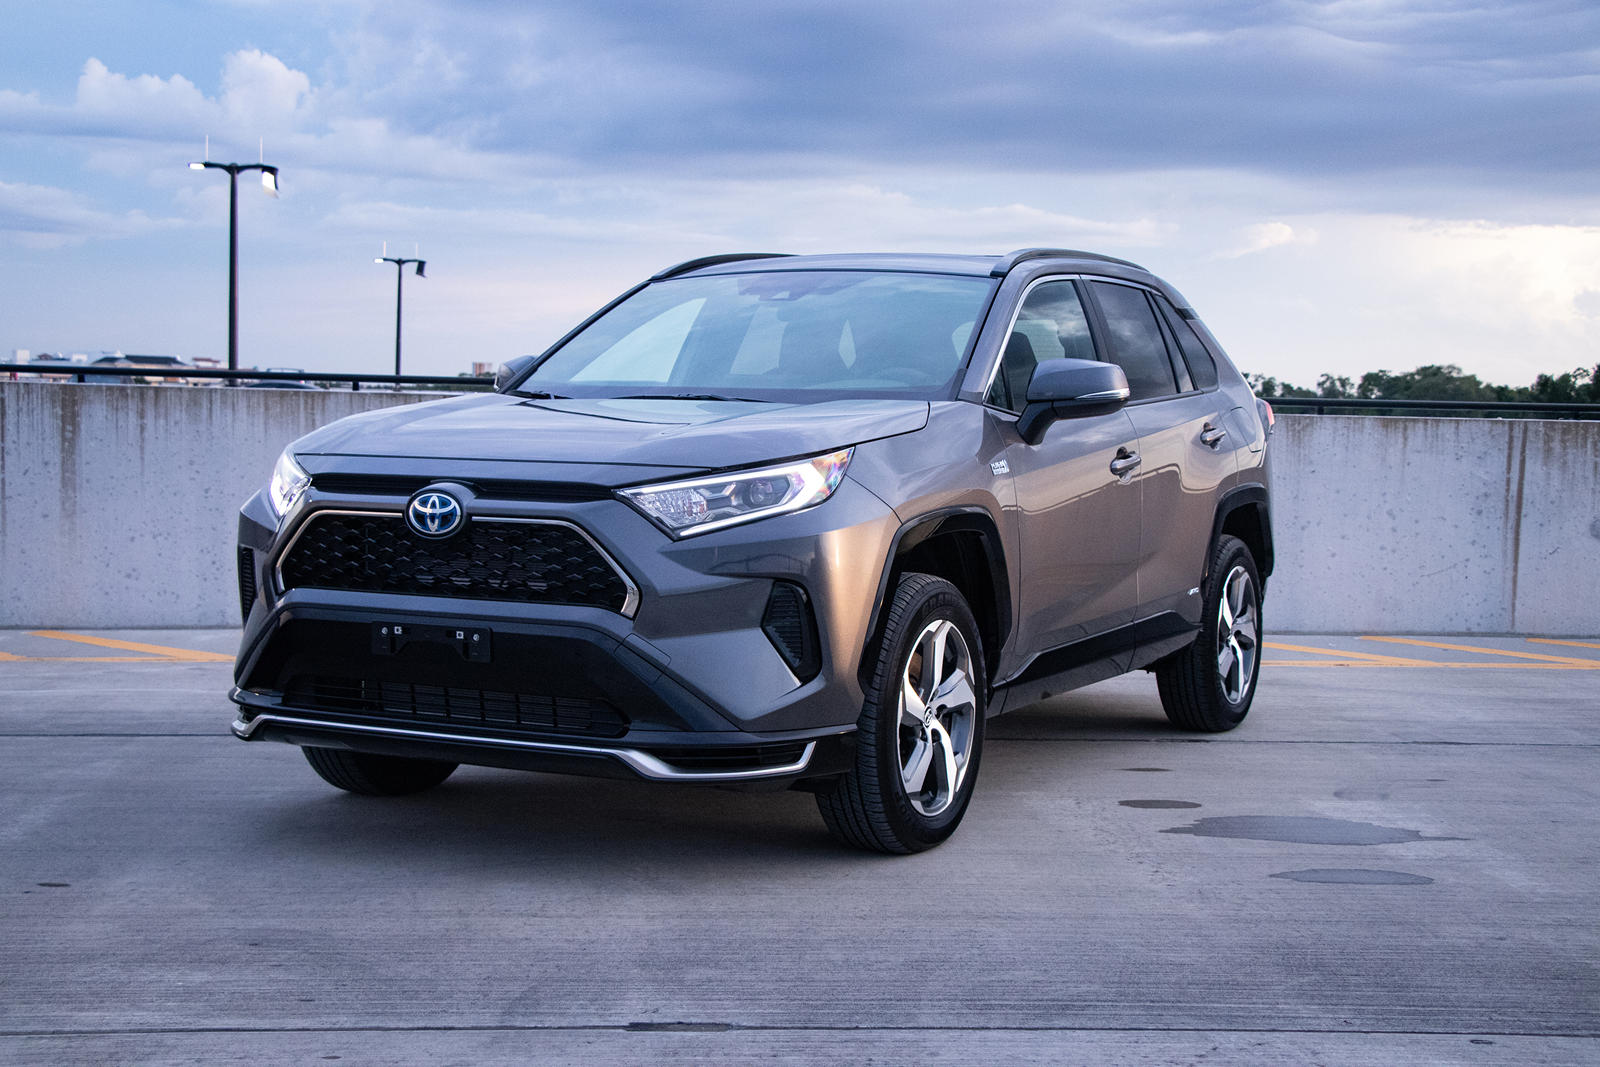 2021 Toyota Rav4 Prime Review Trims Specs Price New Interior Features Exterior Design And Specifications Carbuzz